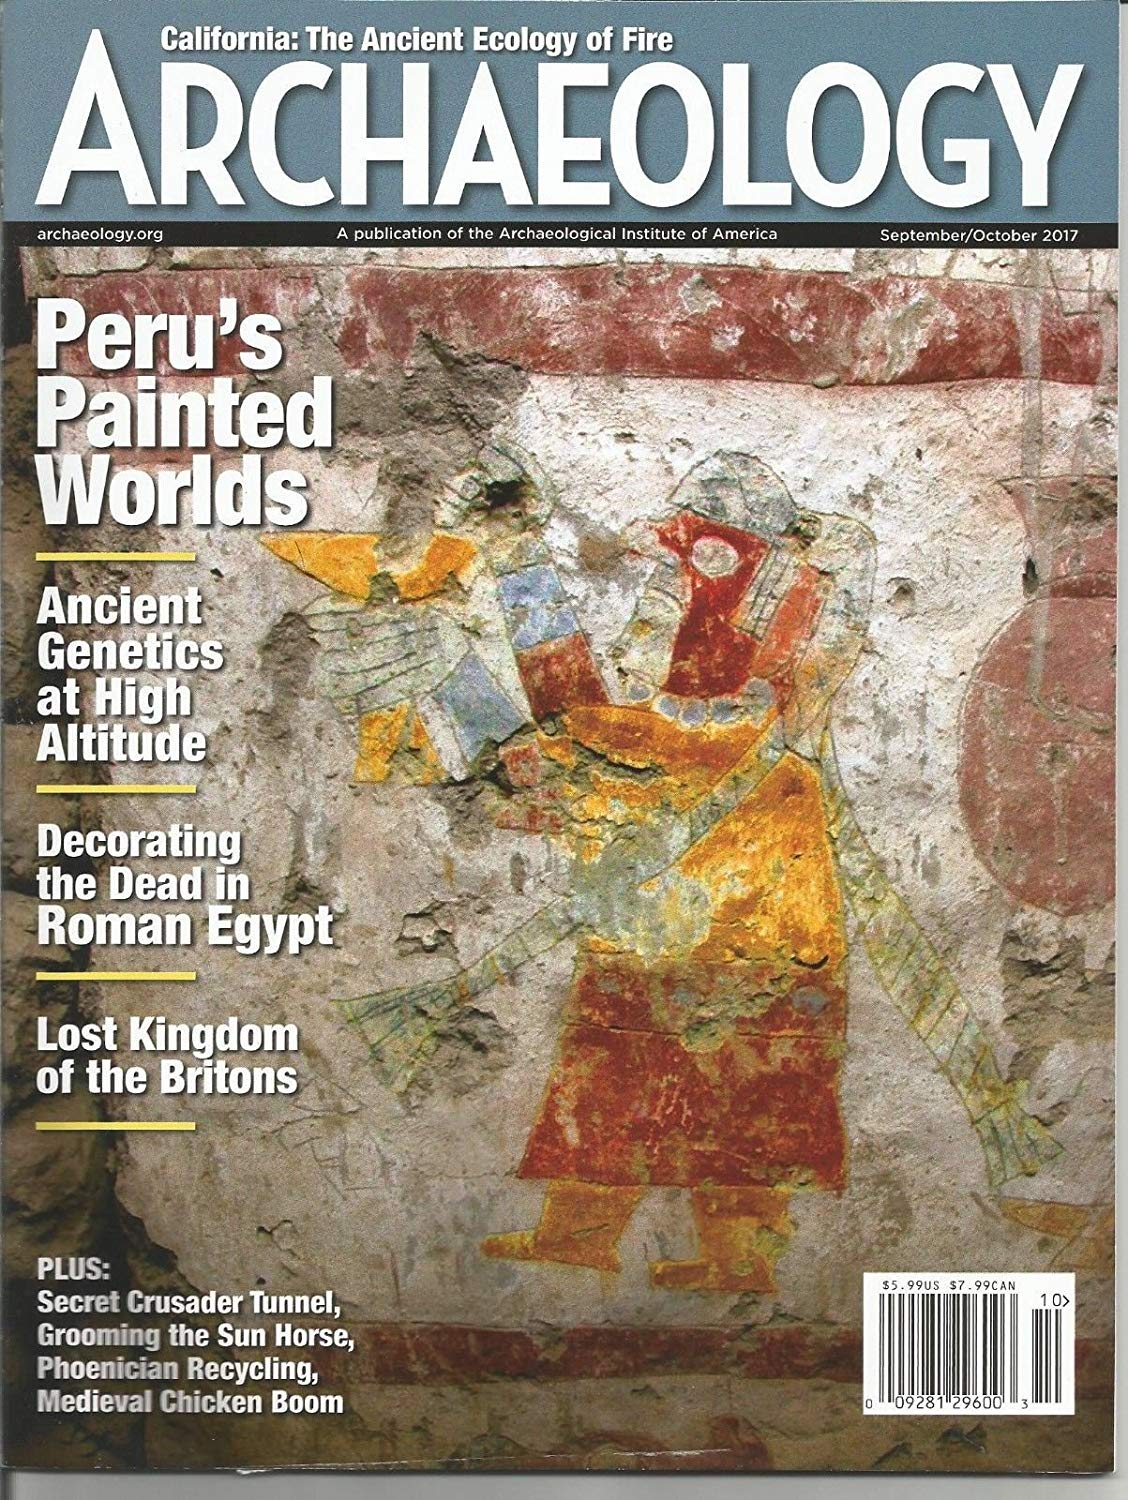 ARCHAEOLOGY, SEPTEMBER/OCTOBER, 2017 (PERU'S PAINTED WORLDS)